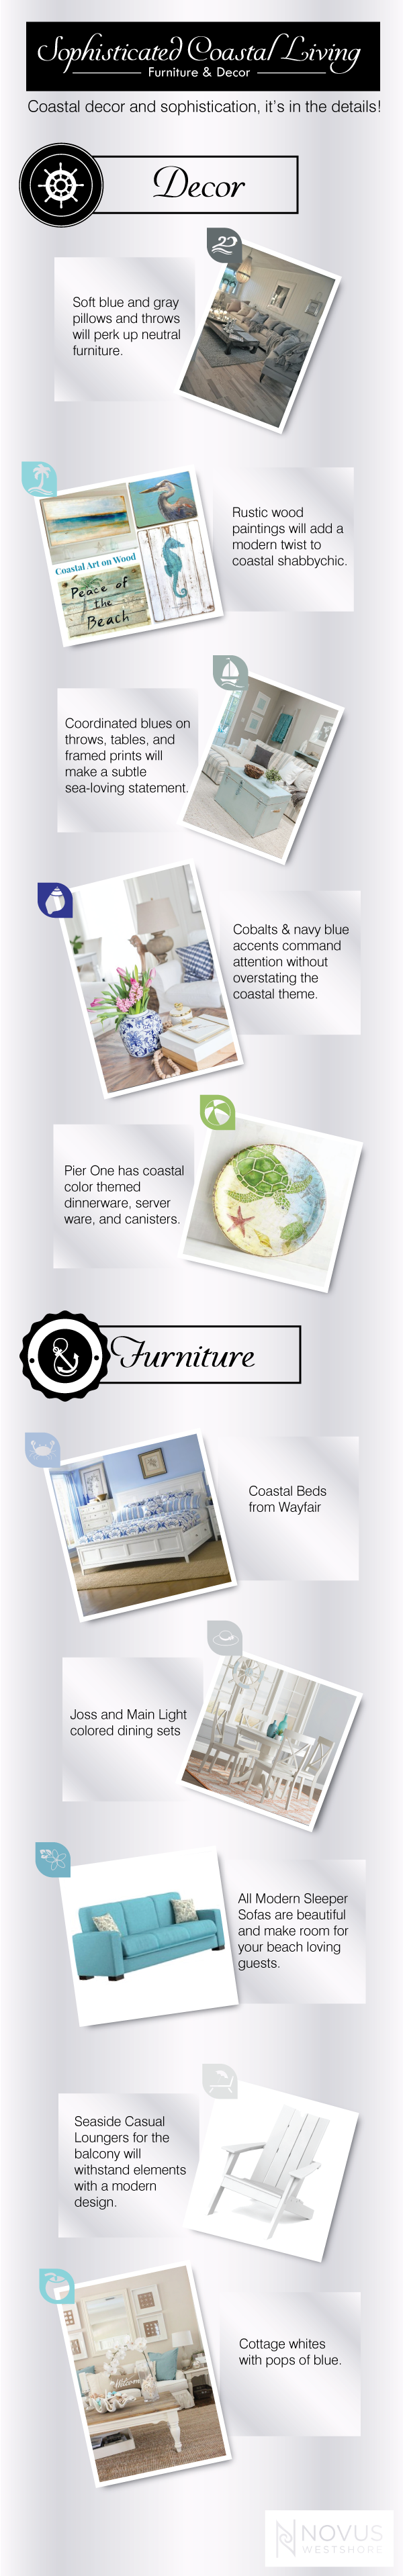 Coastal Furniture and Decor Infographic